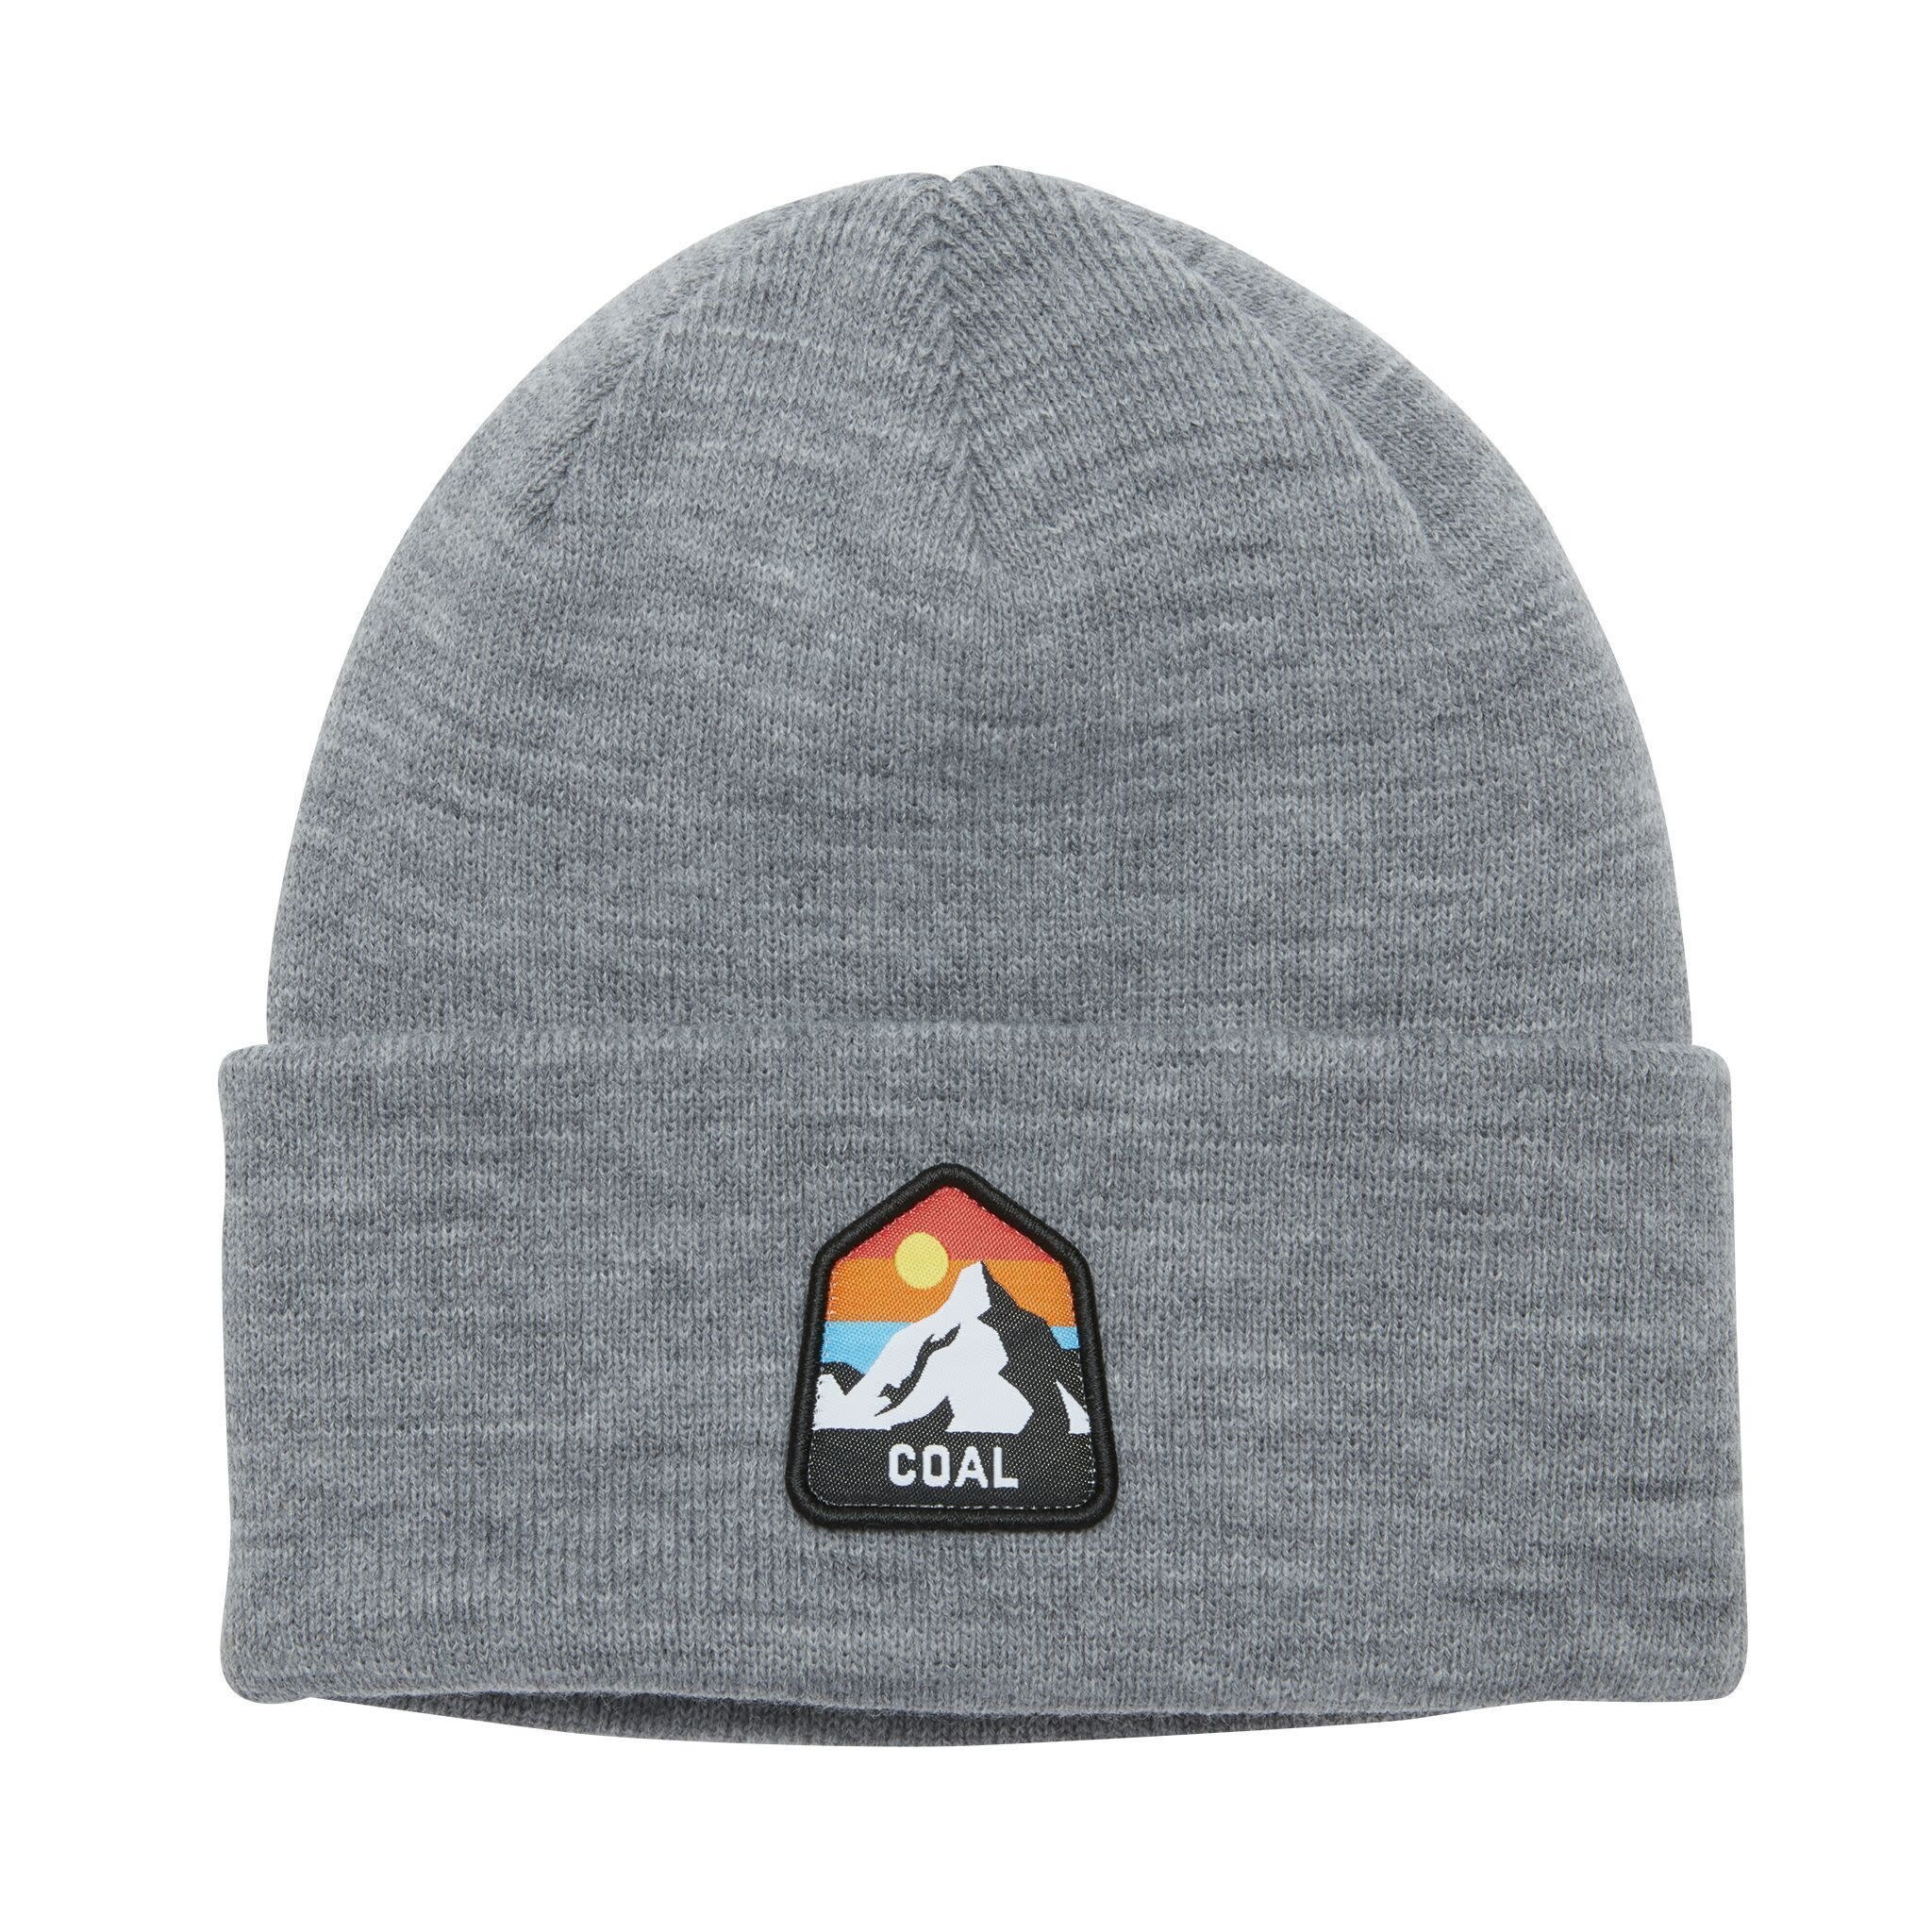 Coal Coal The Peak Mountain Patch Beanie